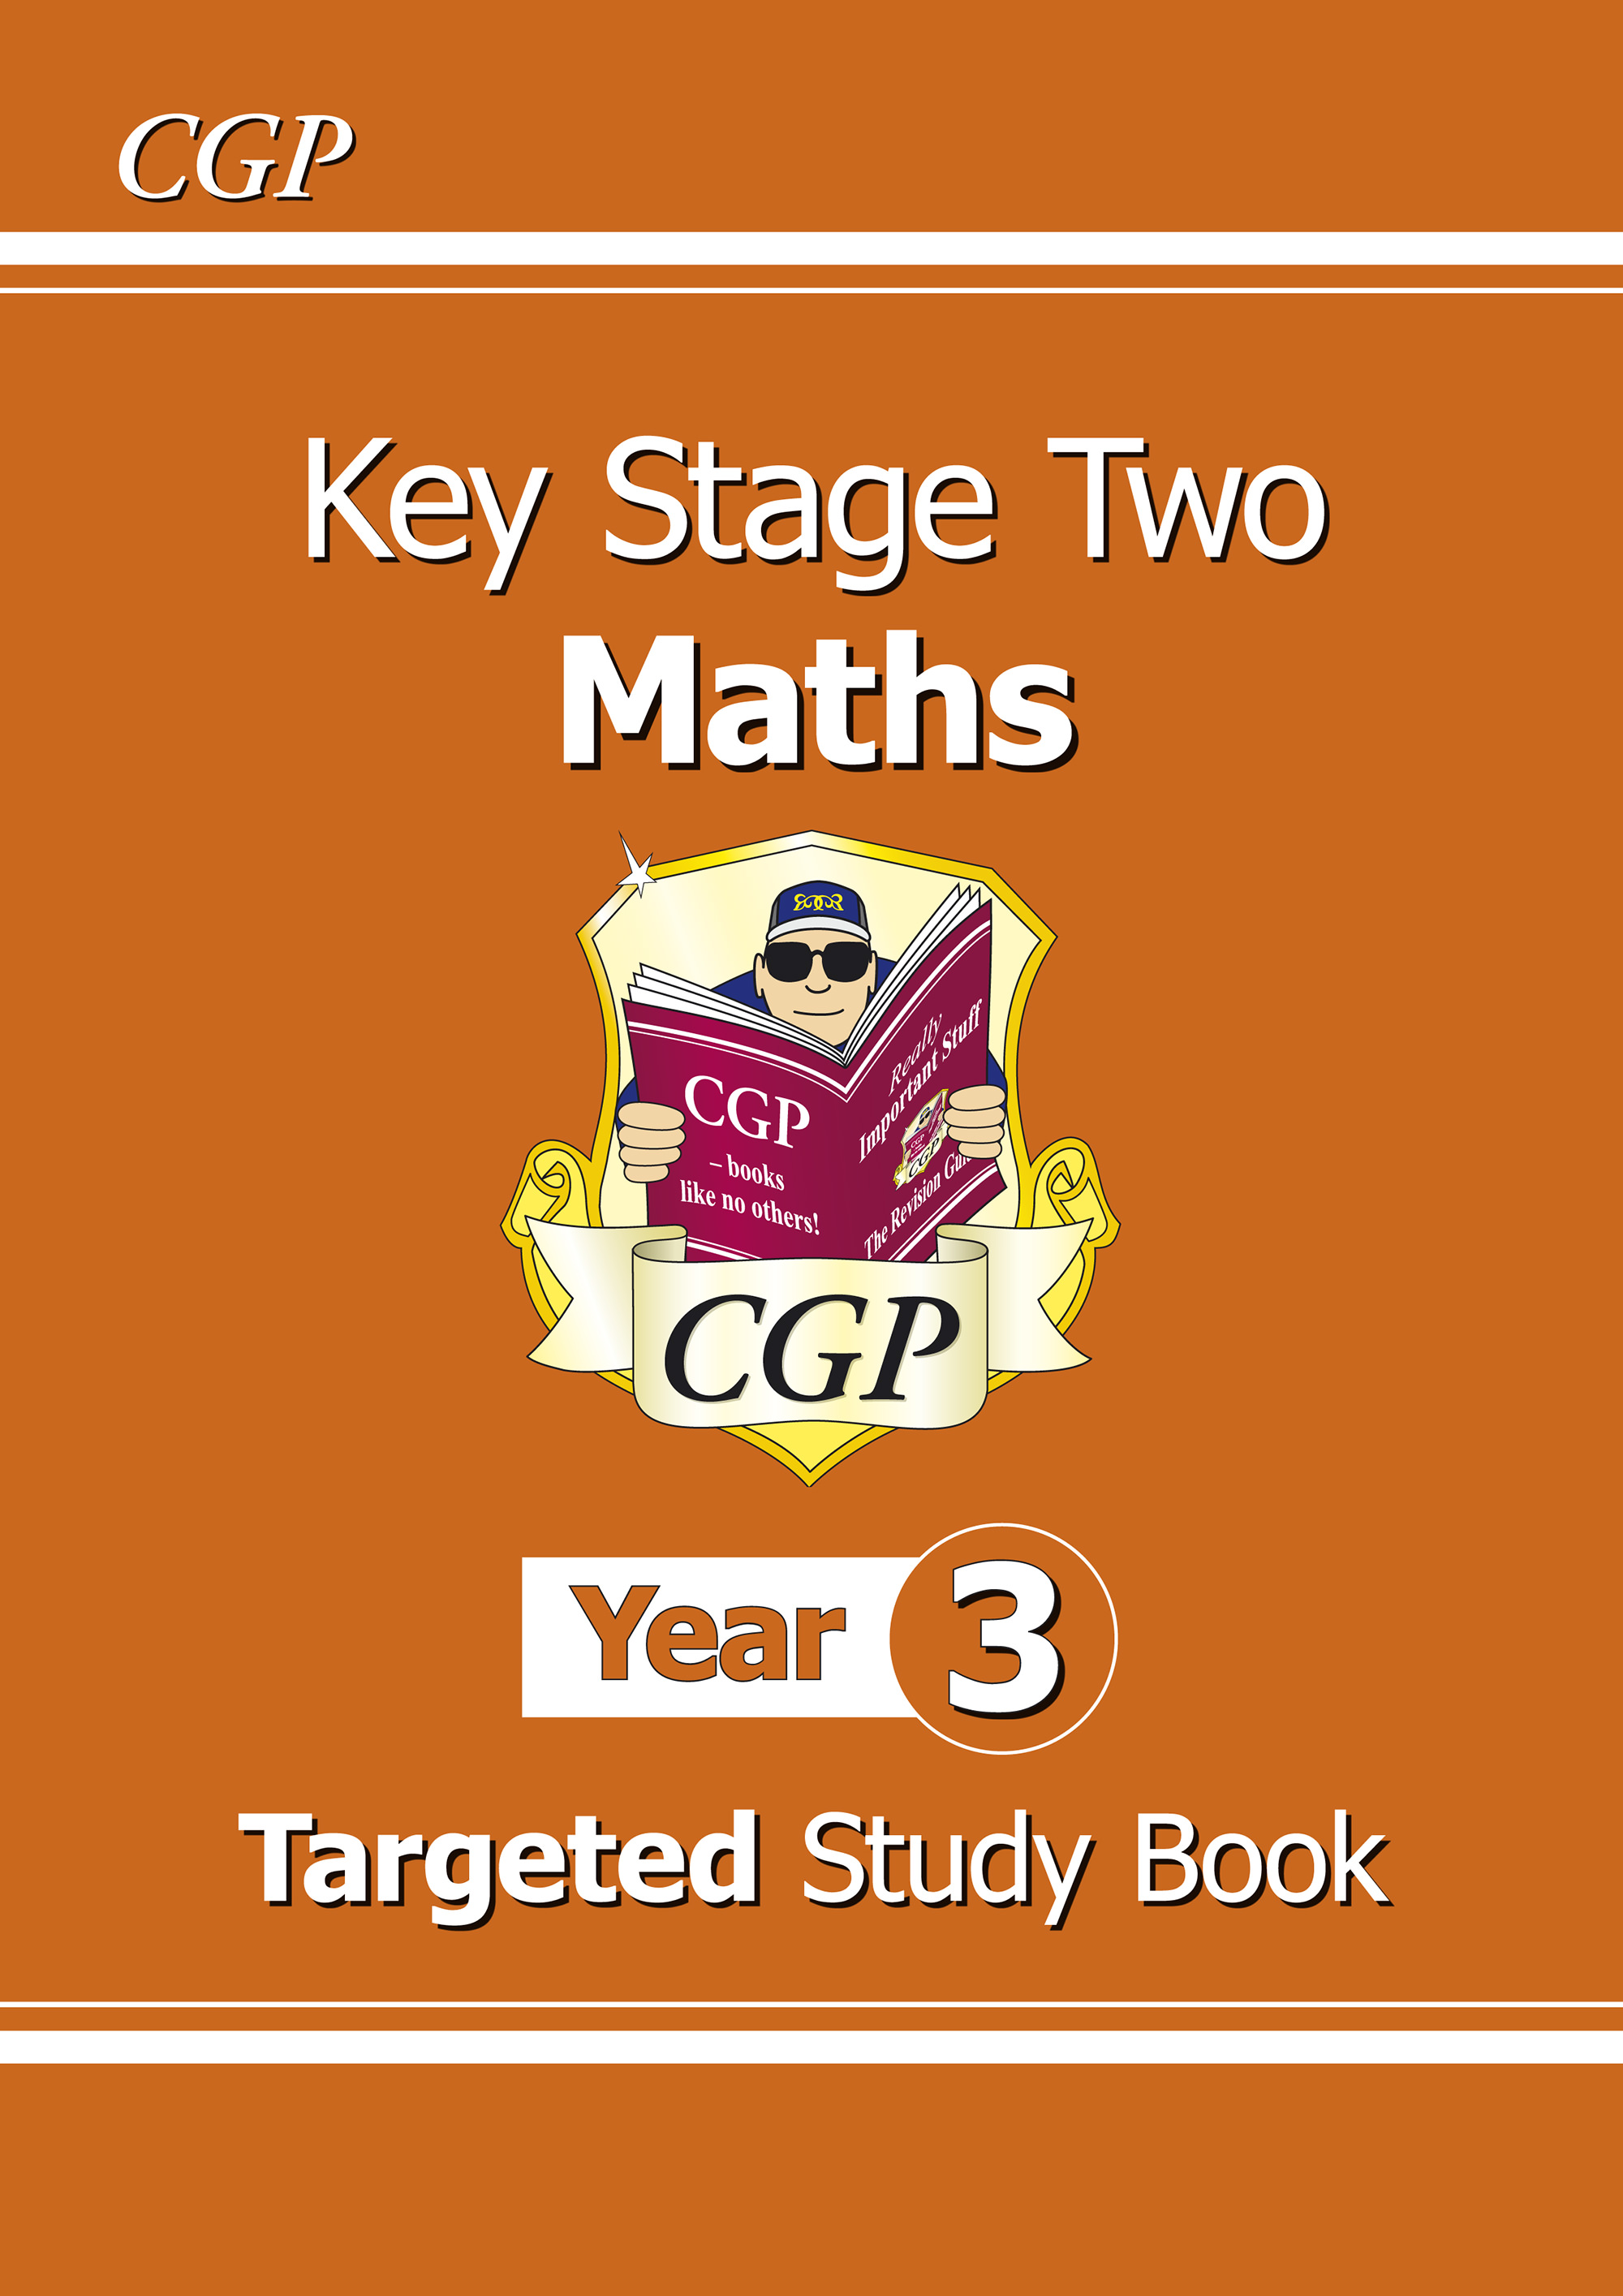 M3R23 - KS2 Maths Targeted Study Book - Year 3